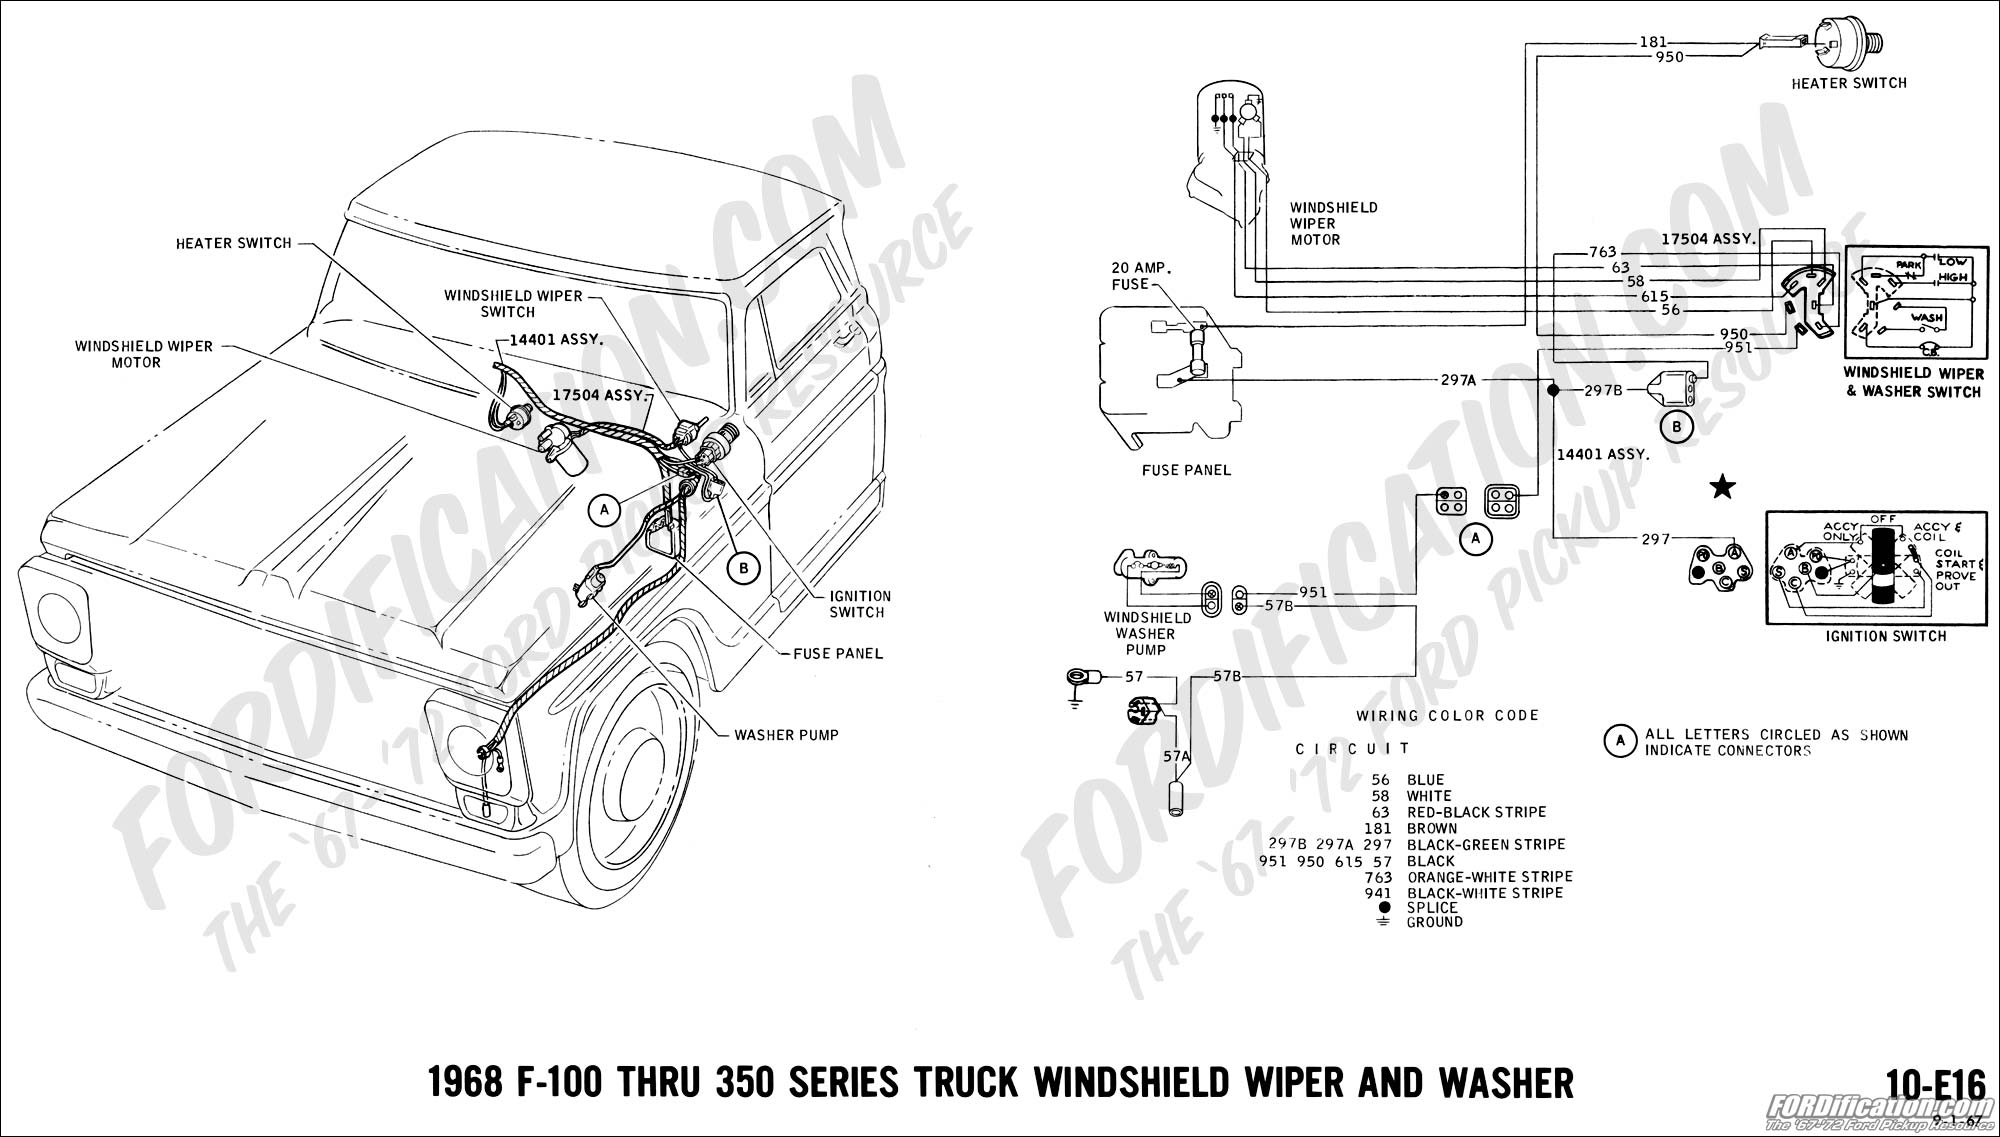 Ford Truck Technical Drawings and Schematics - Section H ... on ford fuel pump wiring diagram, triton snowmobile trailer wiring diagram, msd distributor wiring diagram, 1980 toyota pickup wiring diagram, 96 mustang radio wiring diagram,